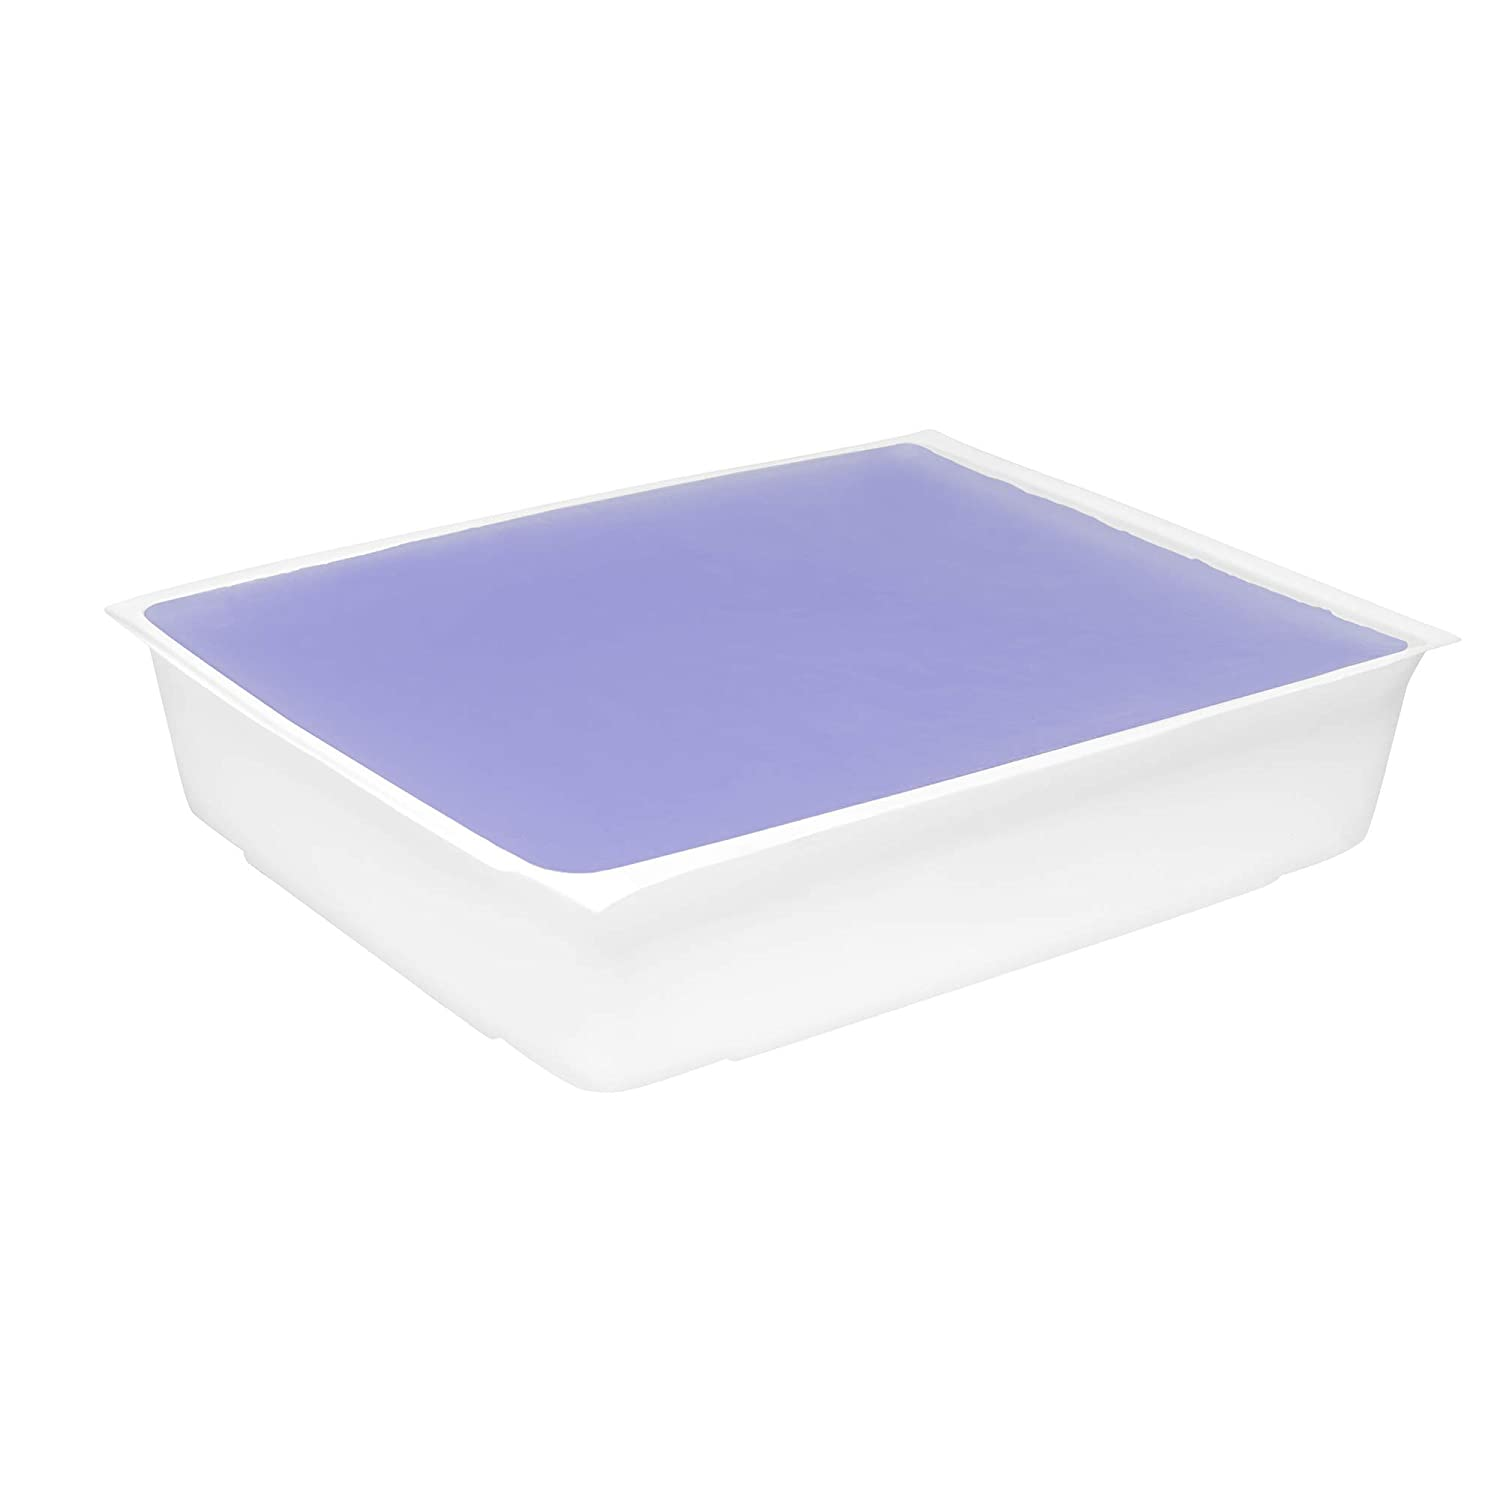 True Glow by Conair Thermal Paraffin Spa 1lb. Wax Refill (Lavender) : Beauty